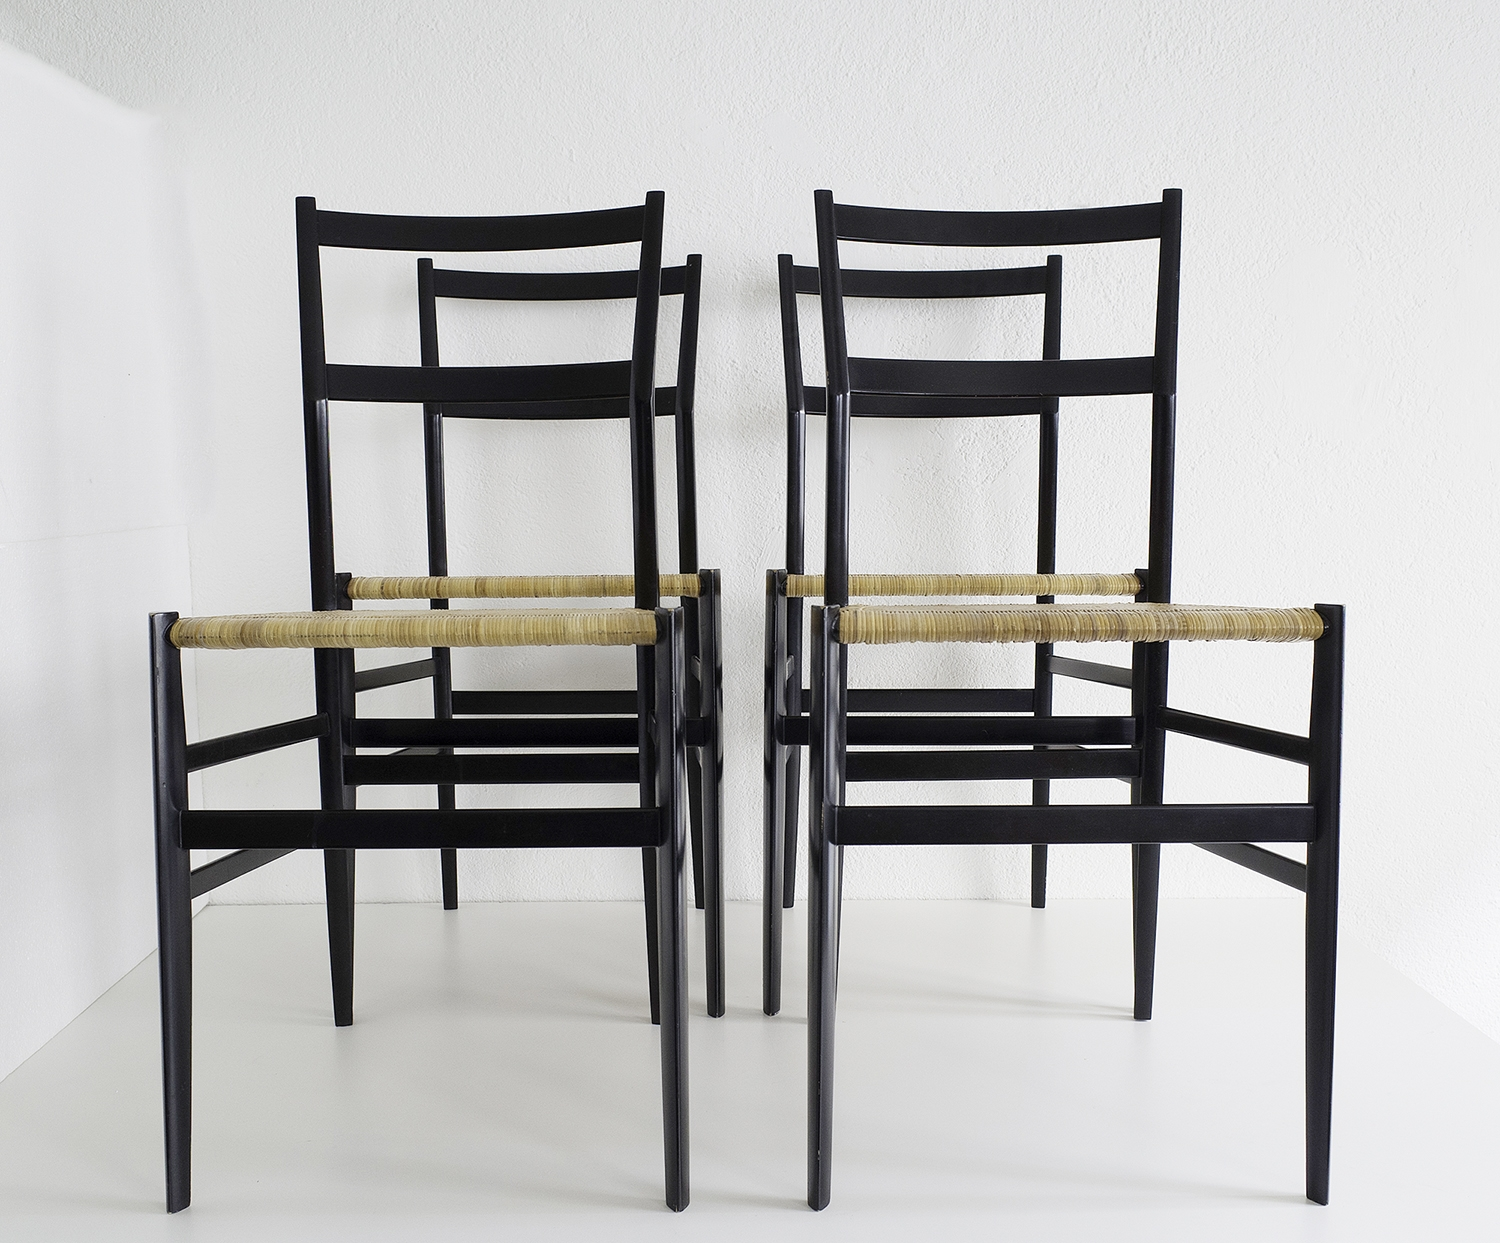 ensemble-de-4-chaises-superleggera-de-gio-ponti-image-01